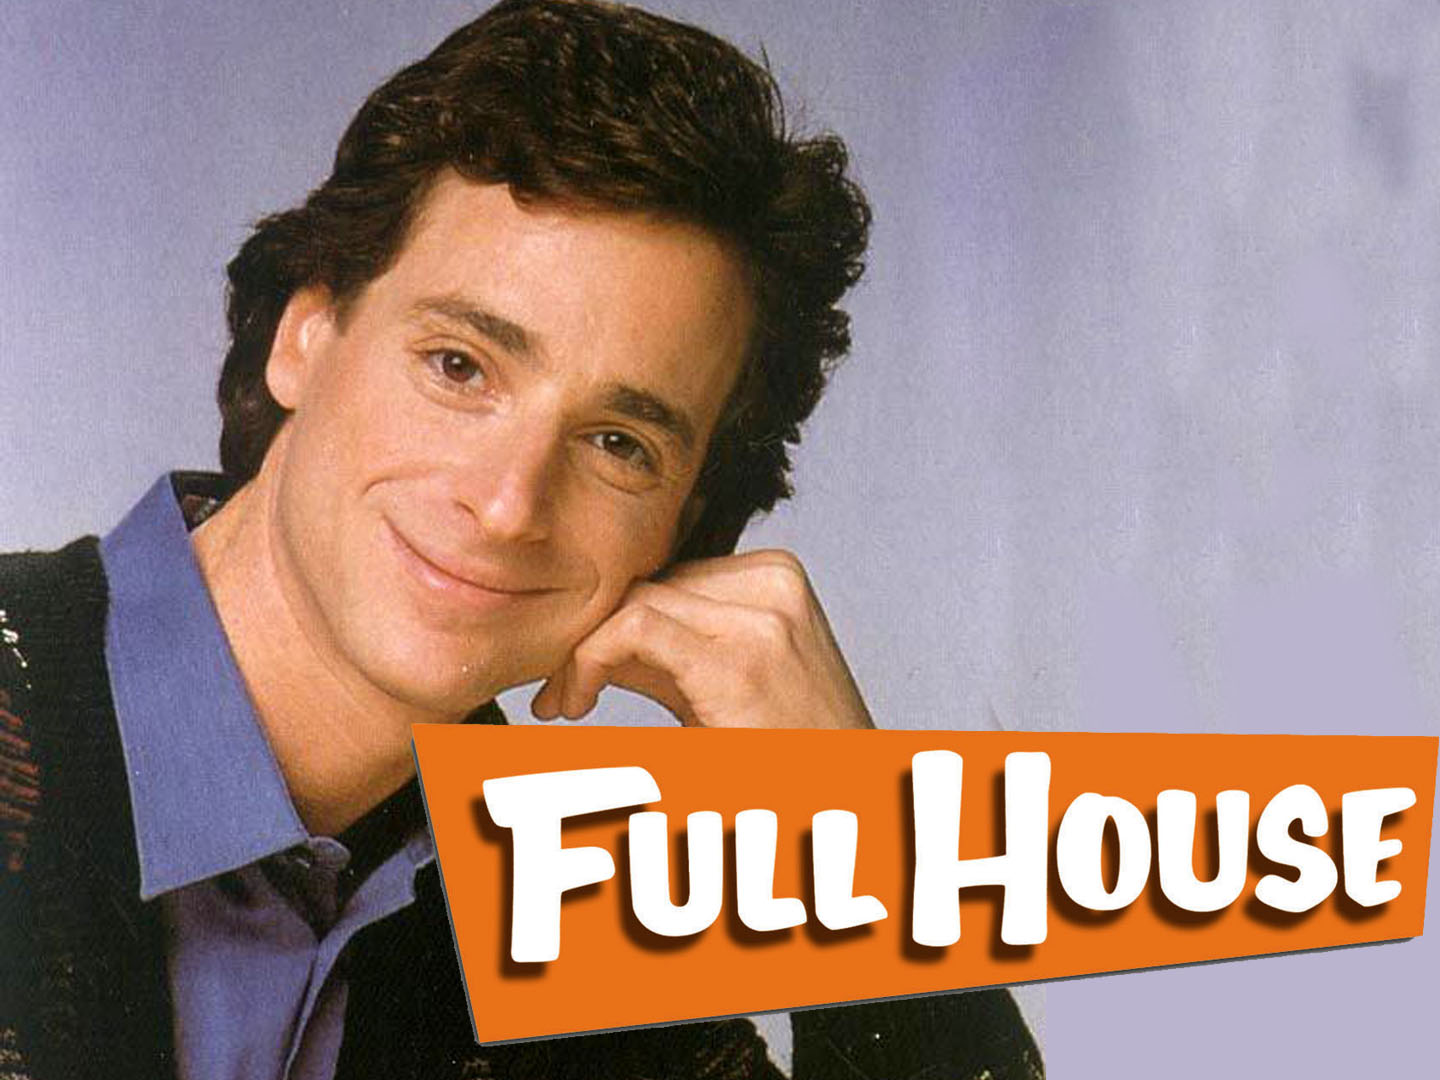 bob-saget-full-house